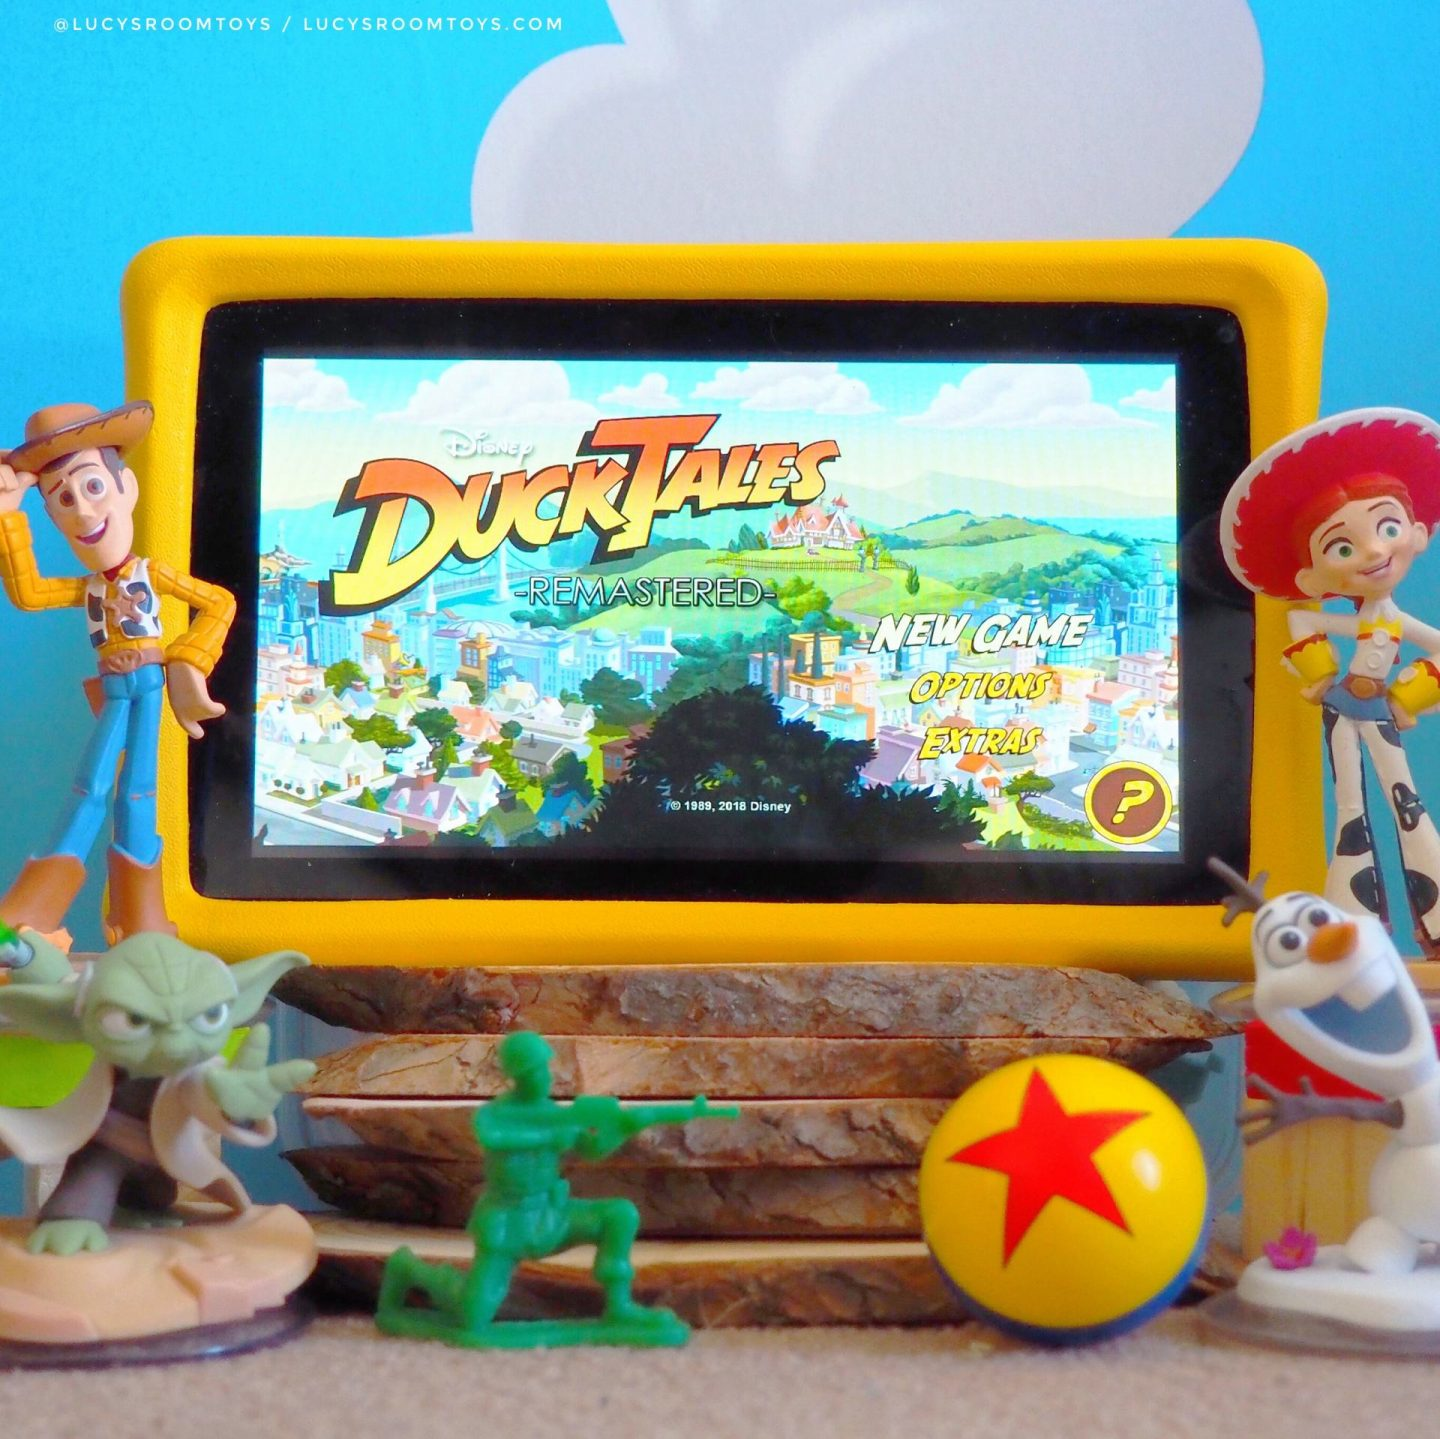 *Ad/Gifted* PebbleGear Toy Story Tablet – My 10 Fave Games!